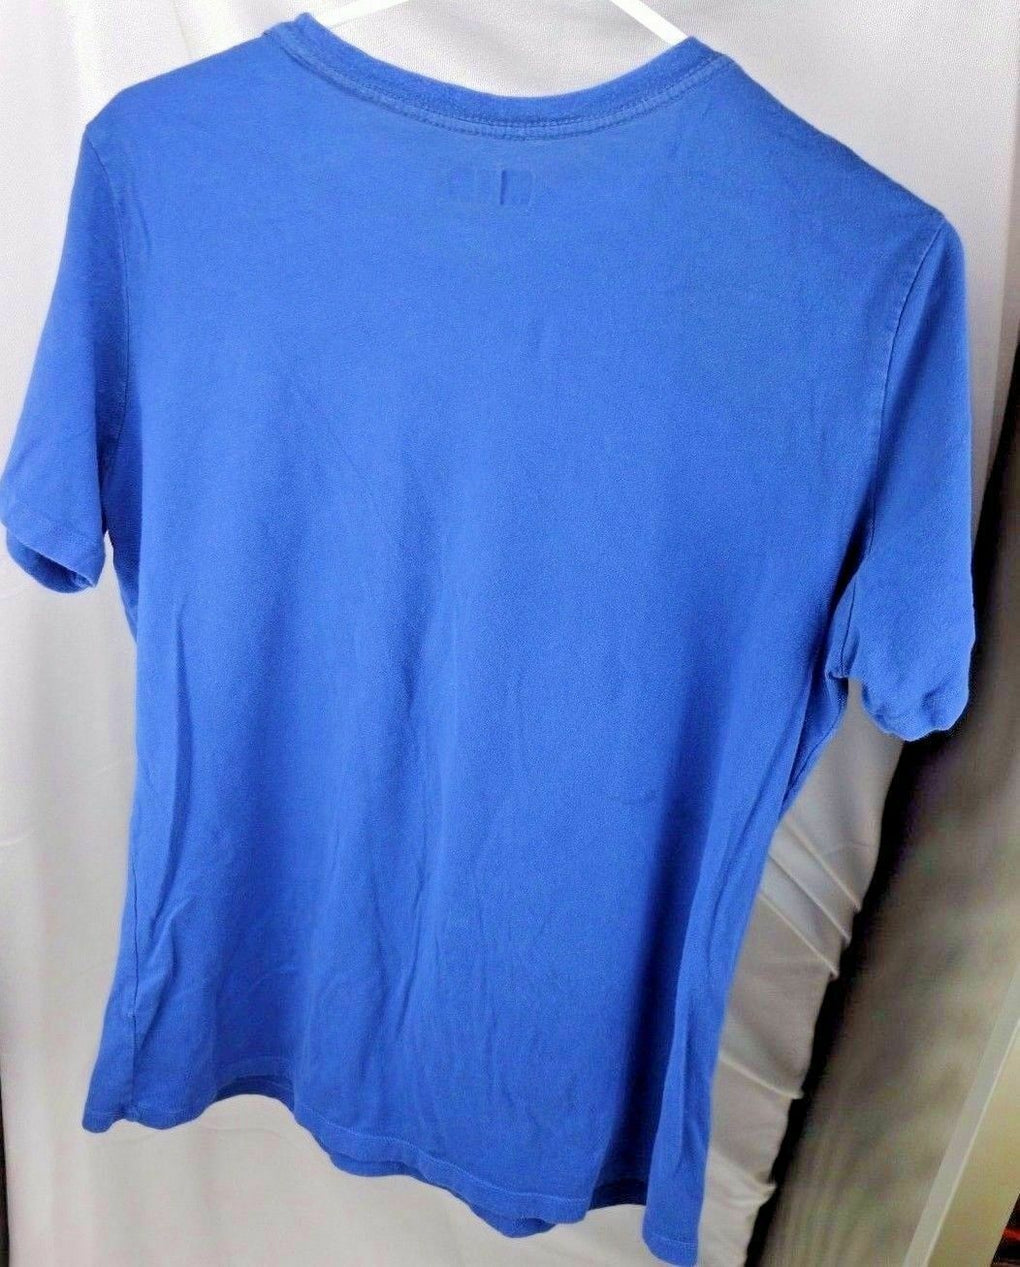 Indianapolis Colts NFL Team Apparel Womens Blue Tee T-Shirt 2XL - fazoom